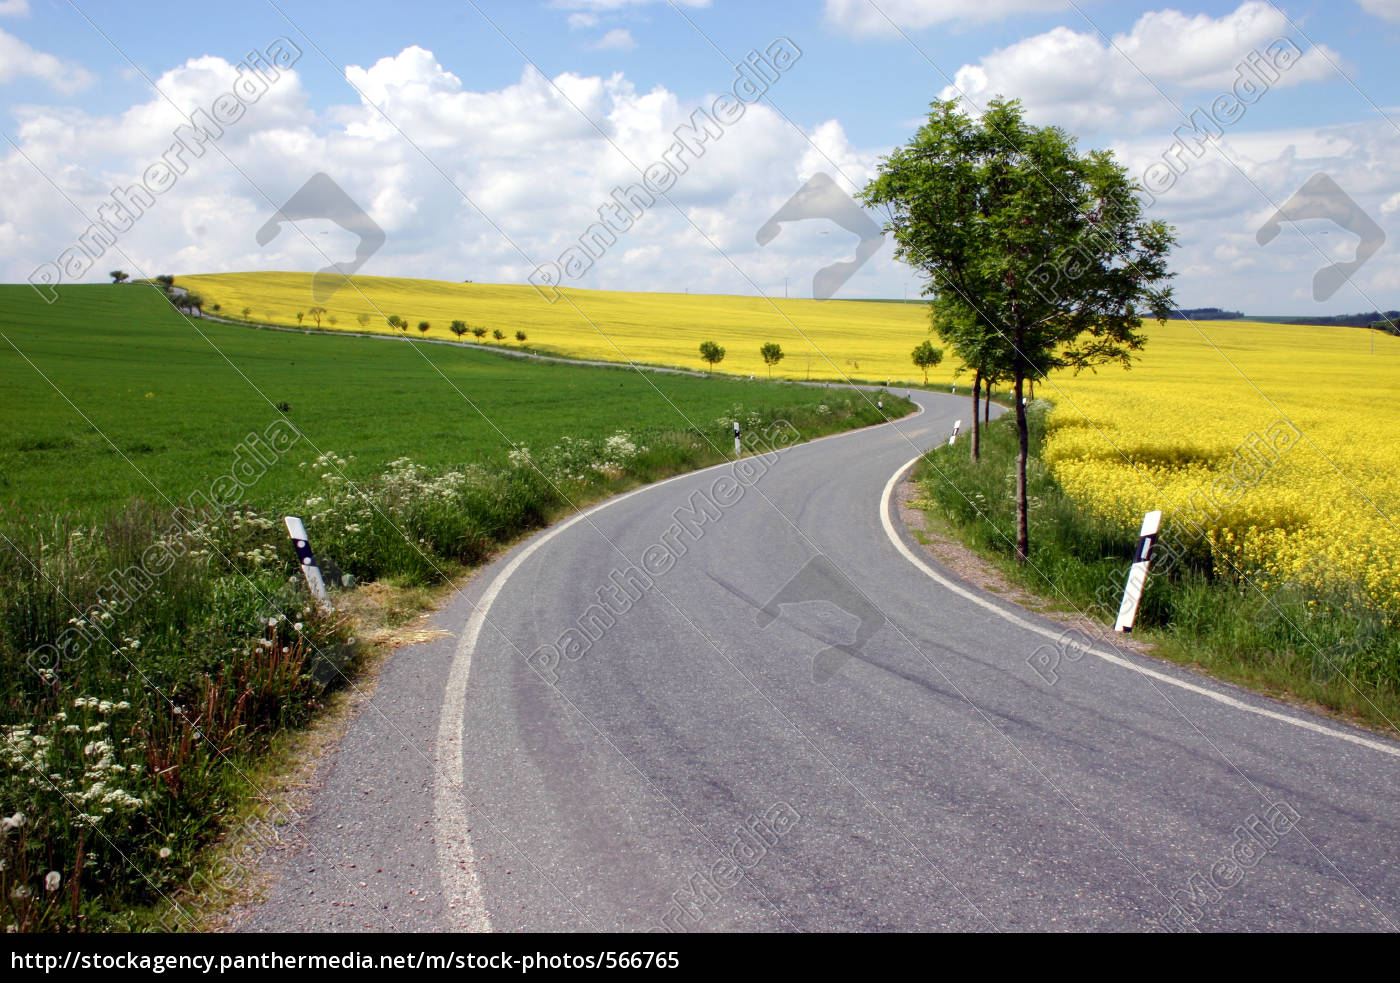 road, rape, field, landscape - 566765